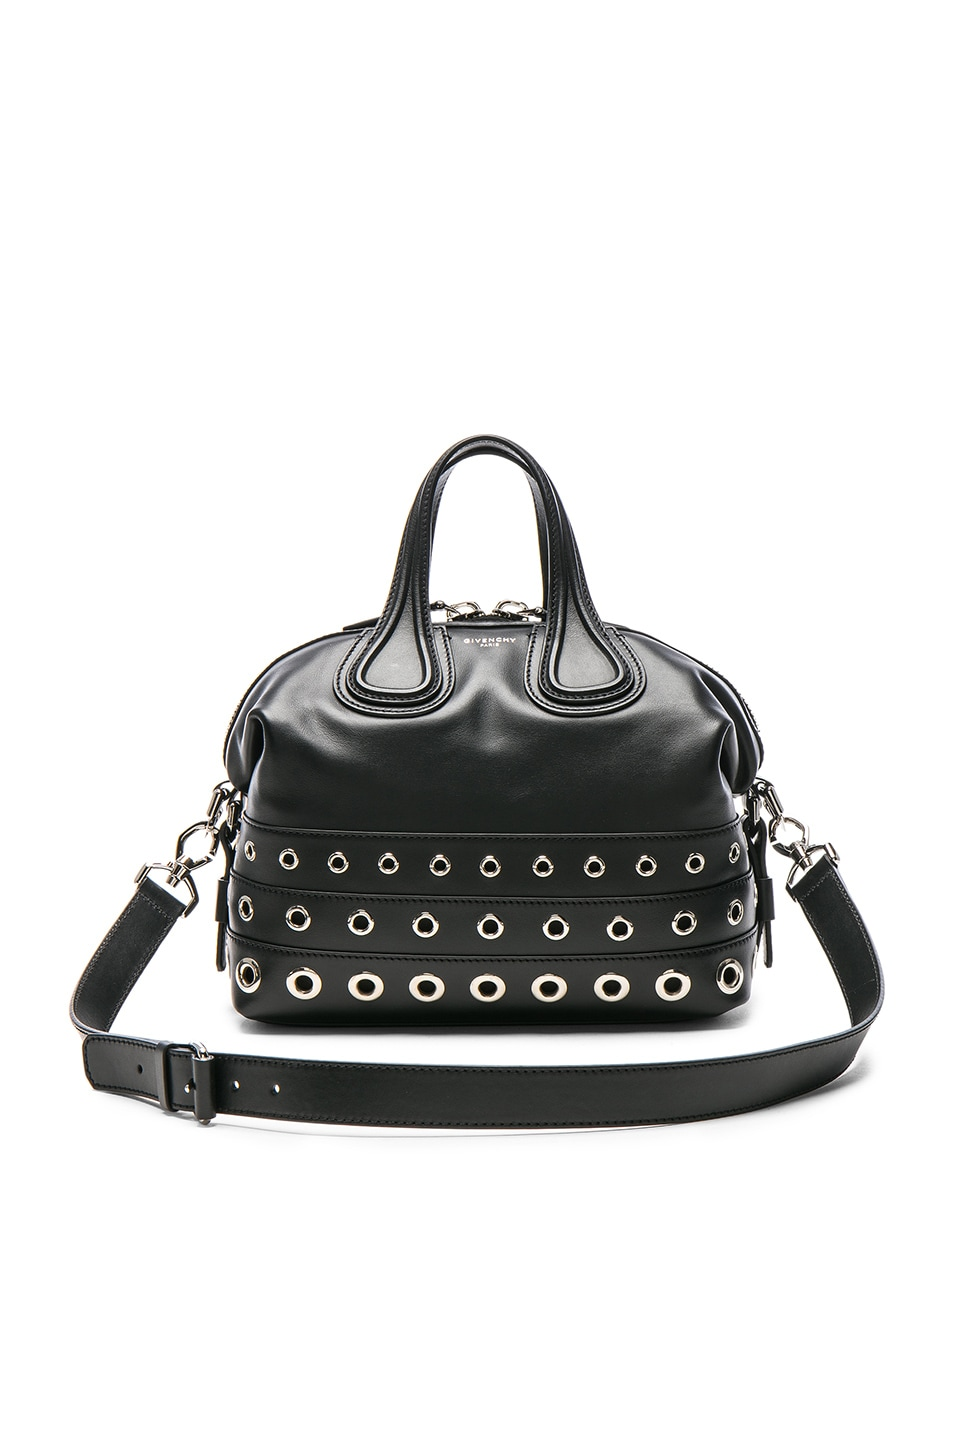 Image 1 of Givenchy Medium Stud Detail Leather Nightingale in Black